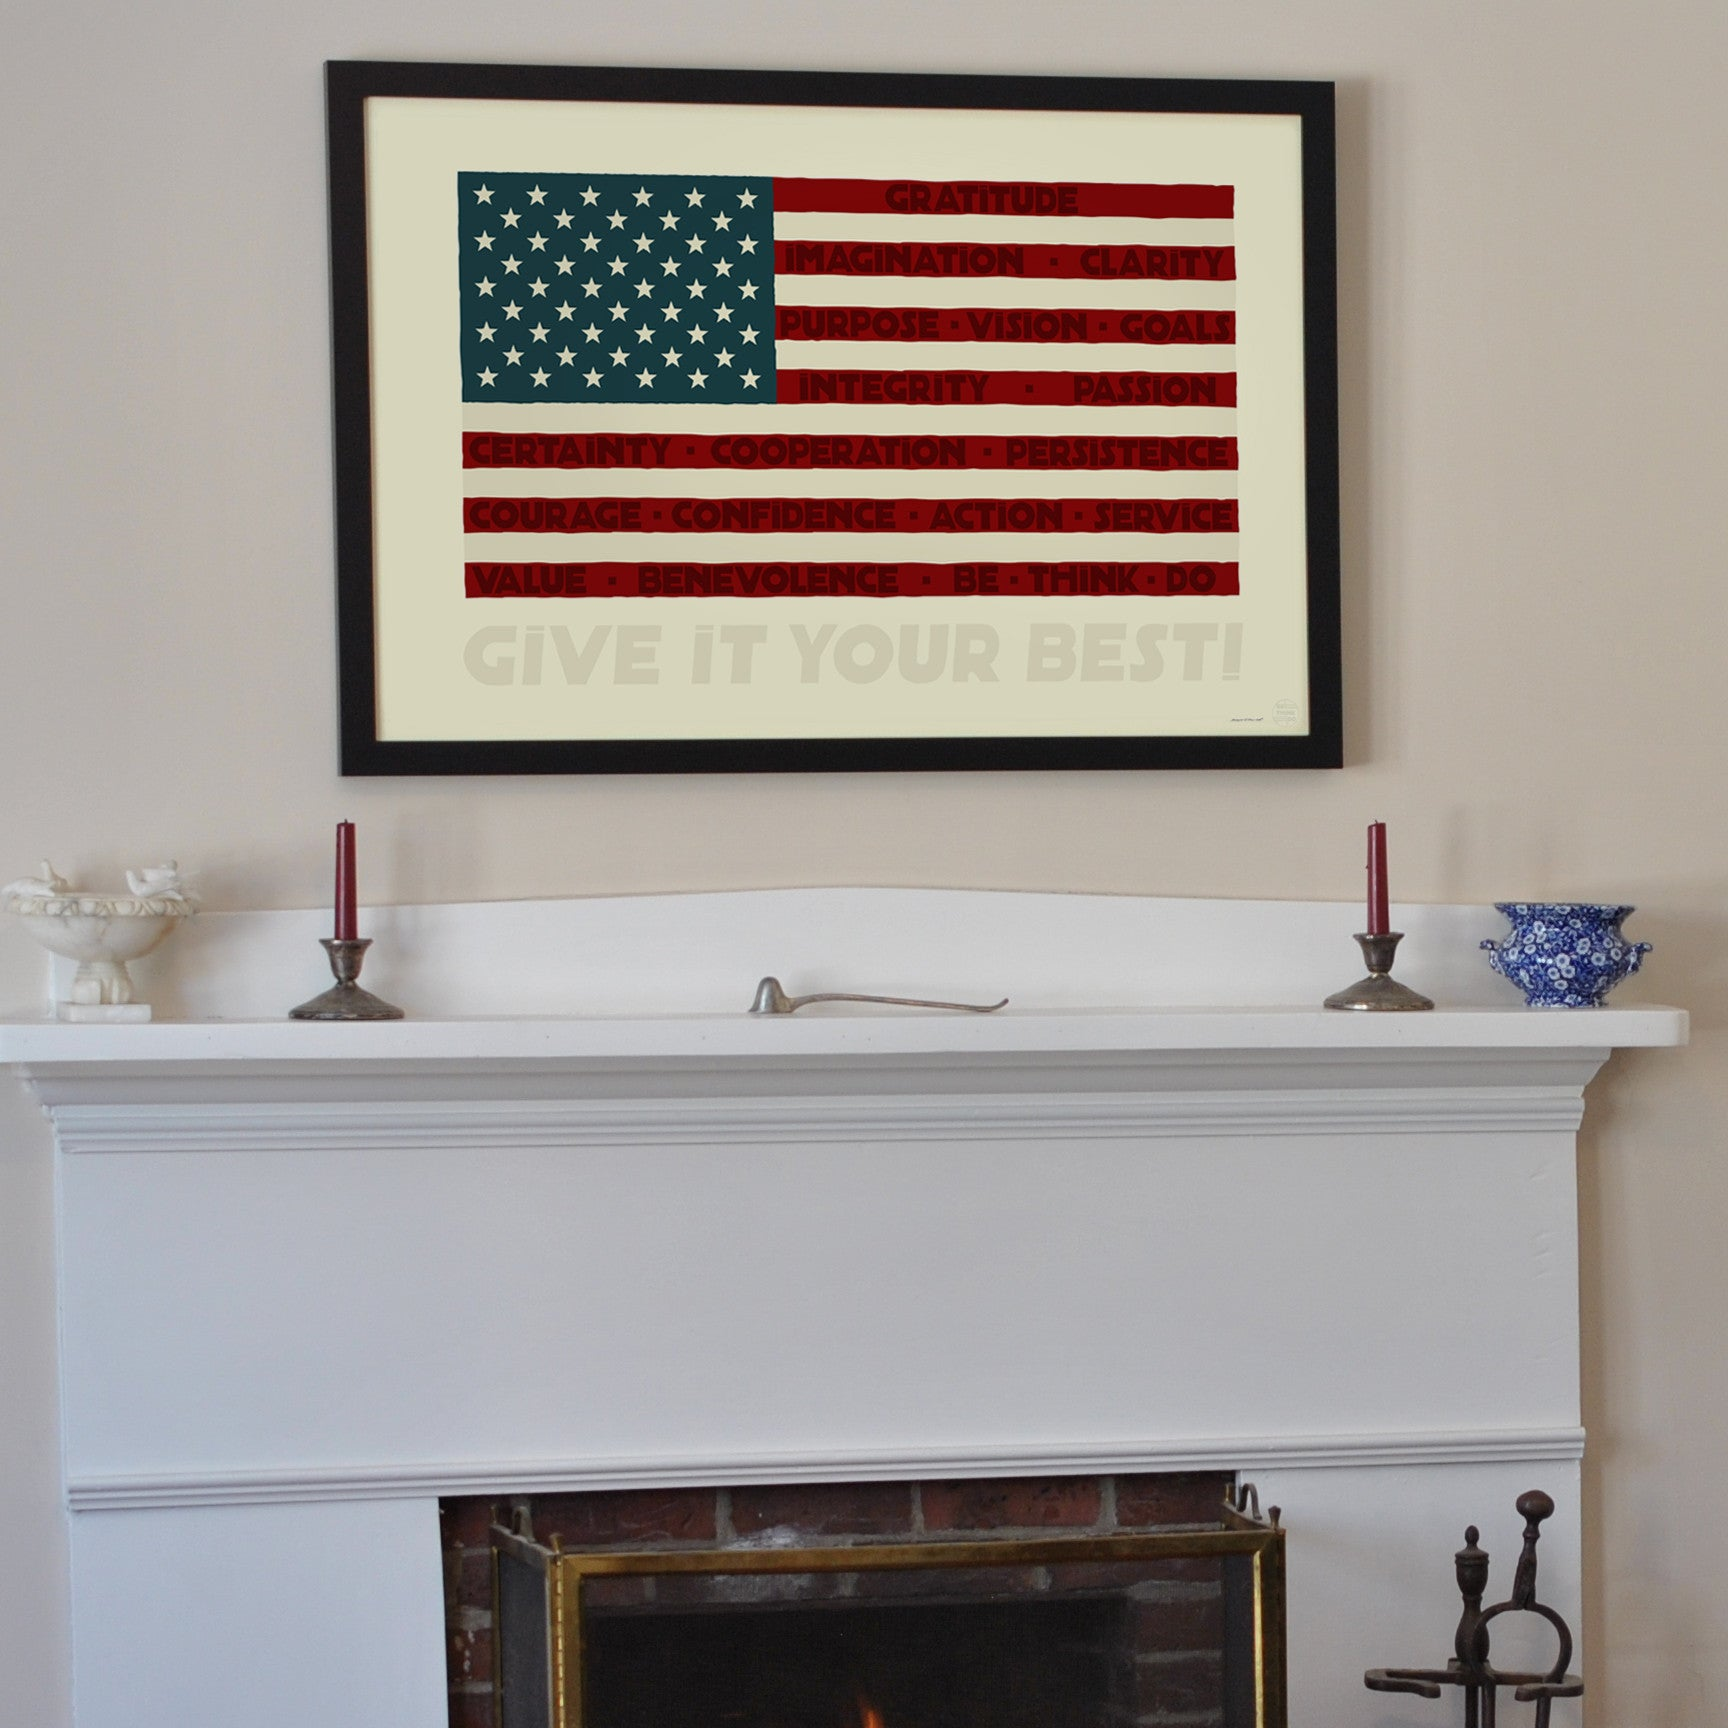 "GIVE IT YOUR BEST! USA Flag Art Print 24"" x 36"" Framed Wall Poster"